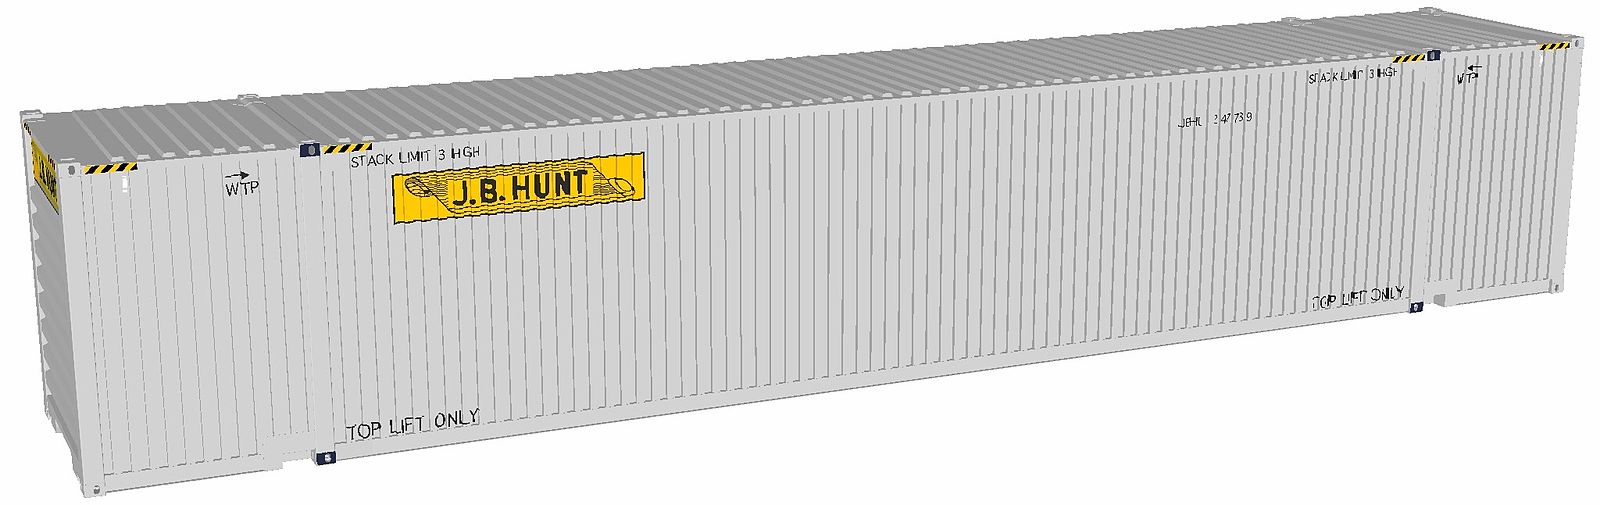 Container Haus Cube Intermodal Container Wikiwand